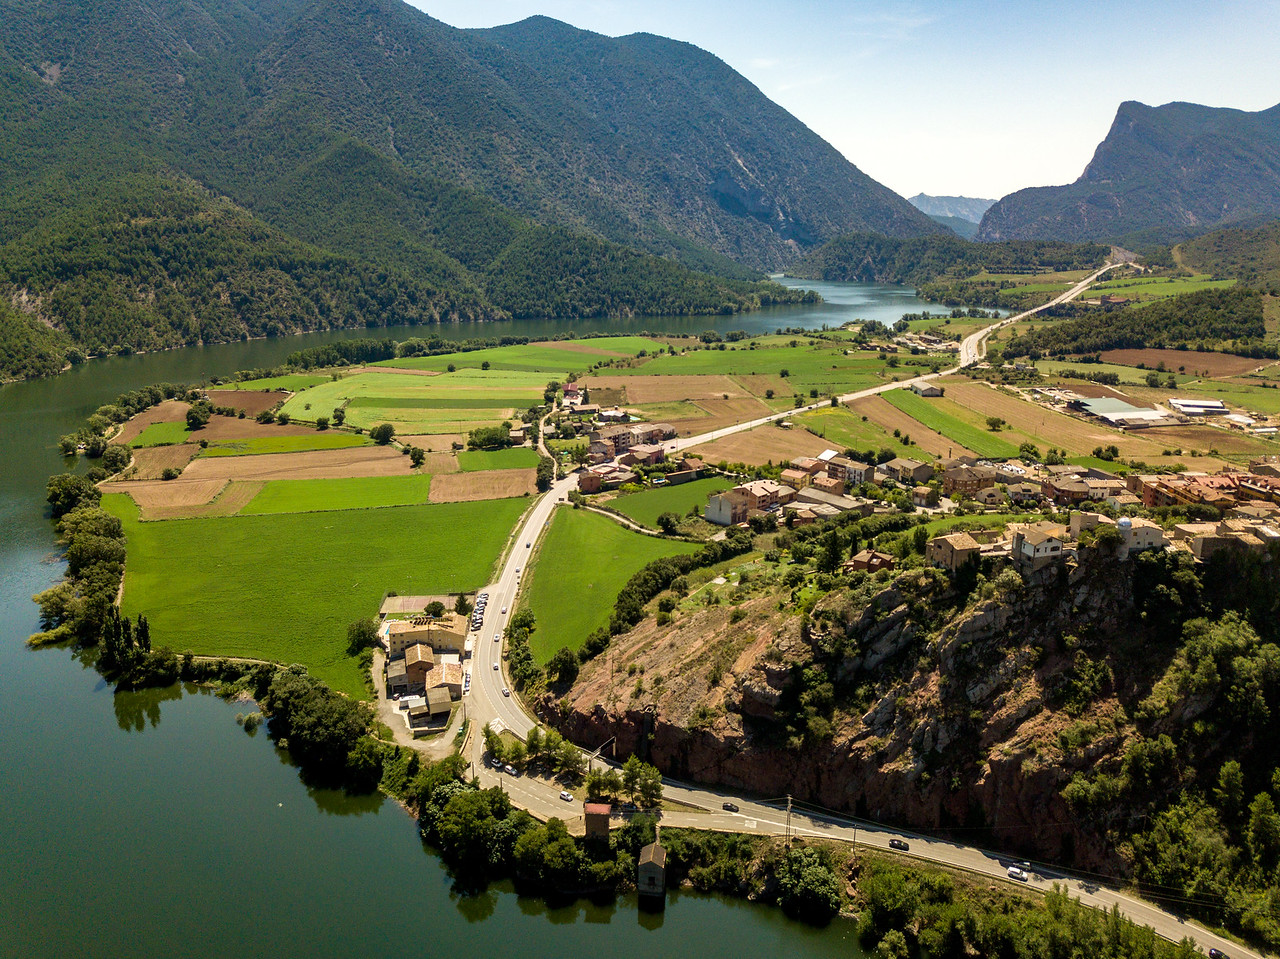 Image of Drone Shot of the Landscape Around Andorra